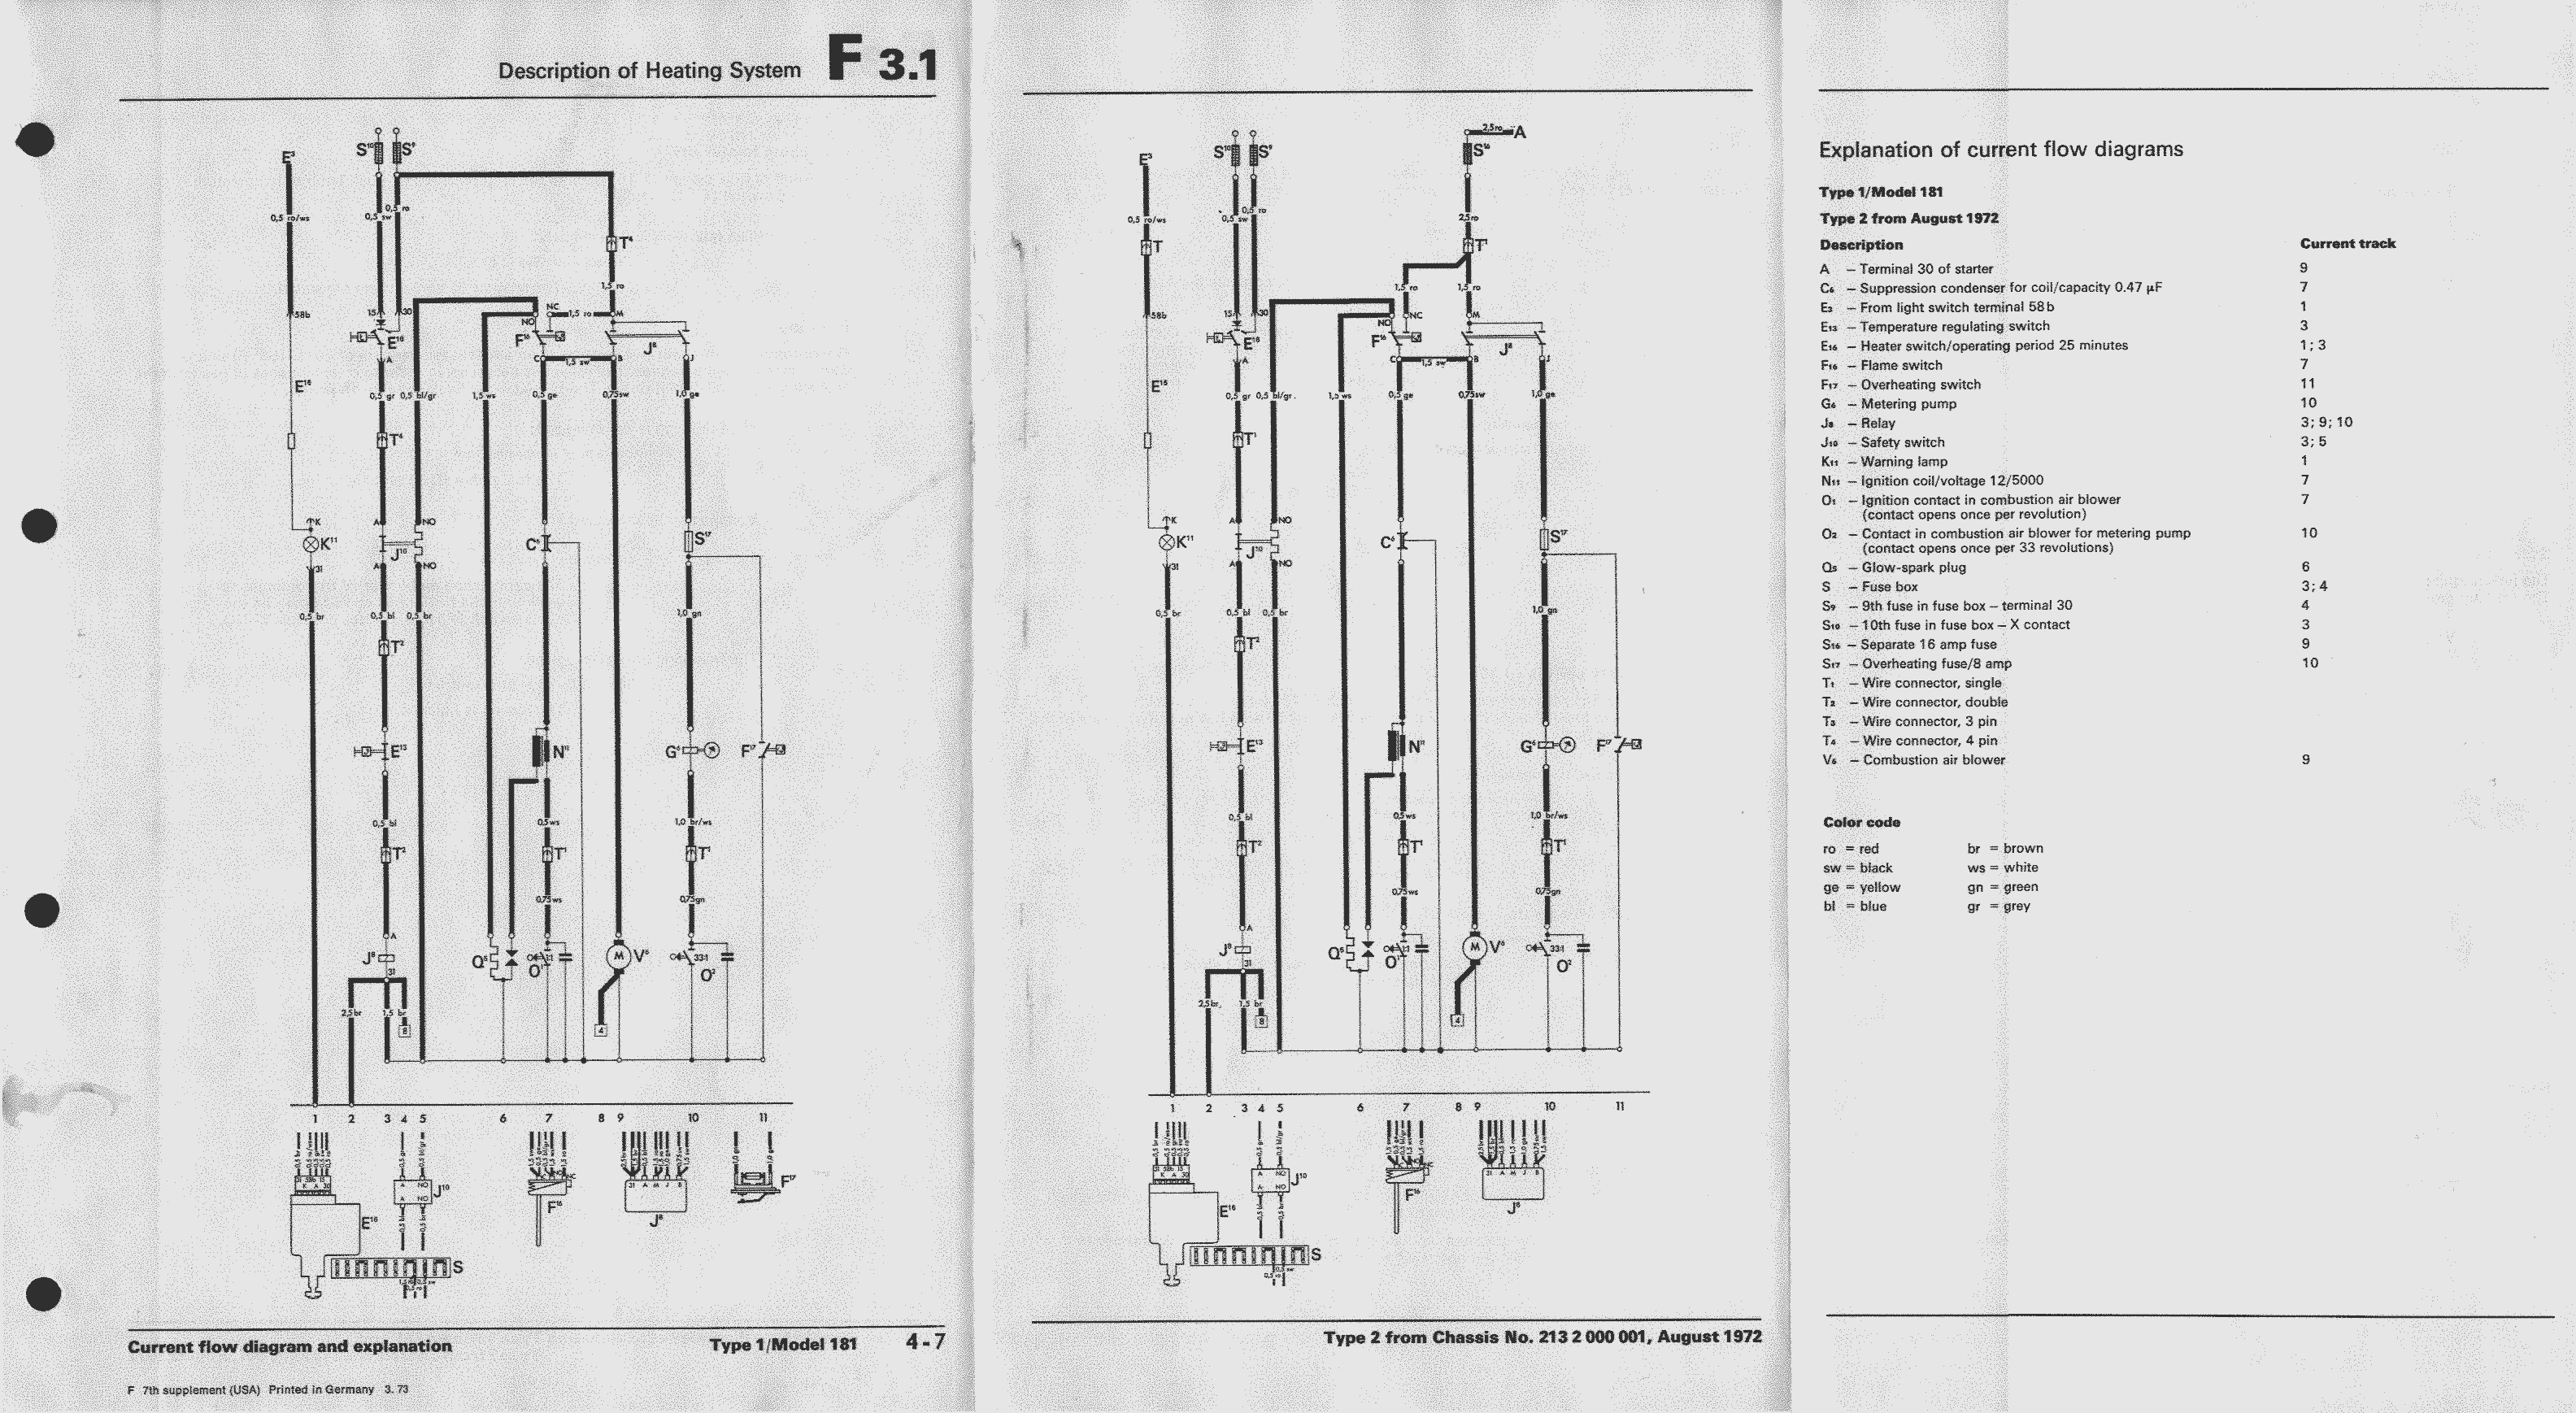 Obsolete Air Cooled Documentation Project Vw Workshop Manual 76 Type 2 Wiring Diagram Types And 181